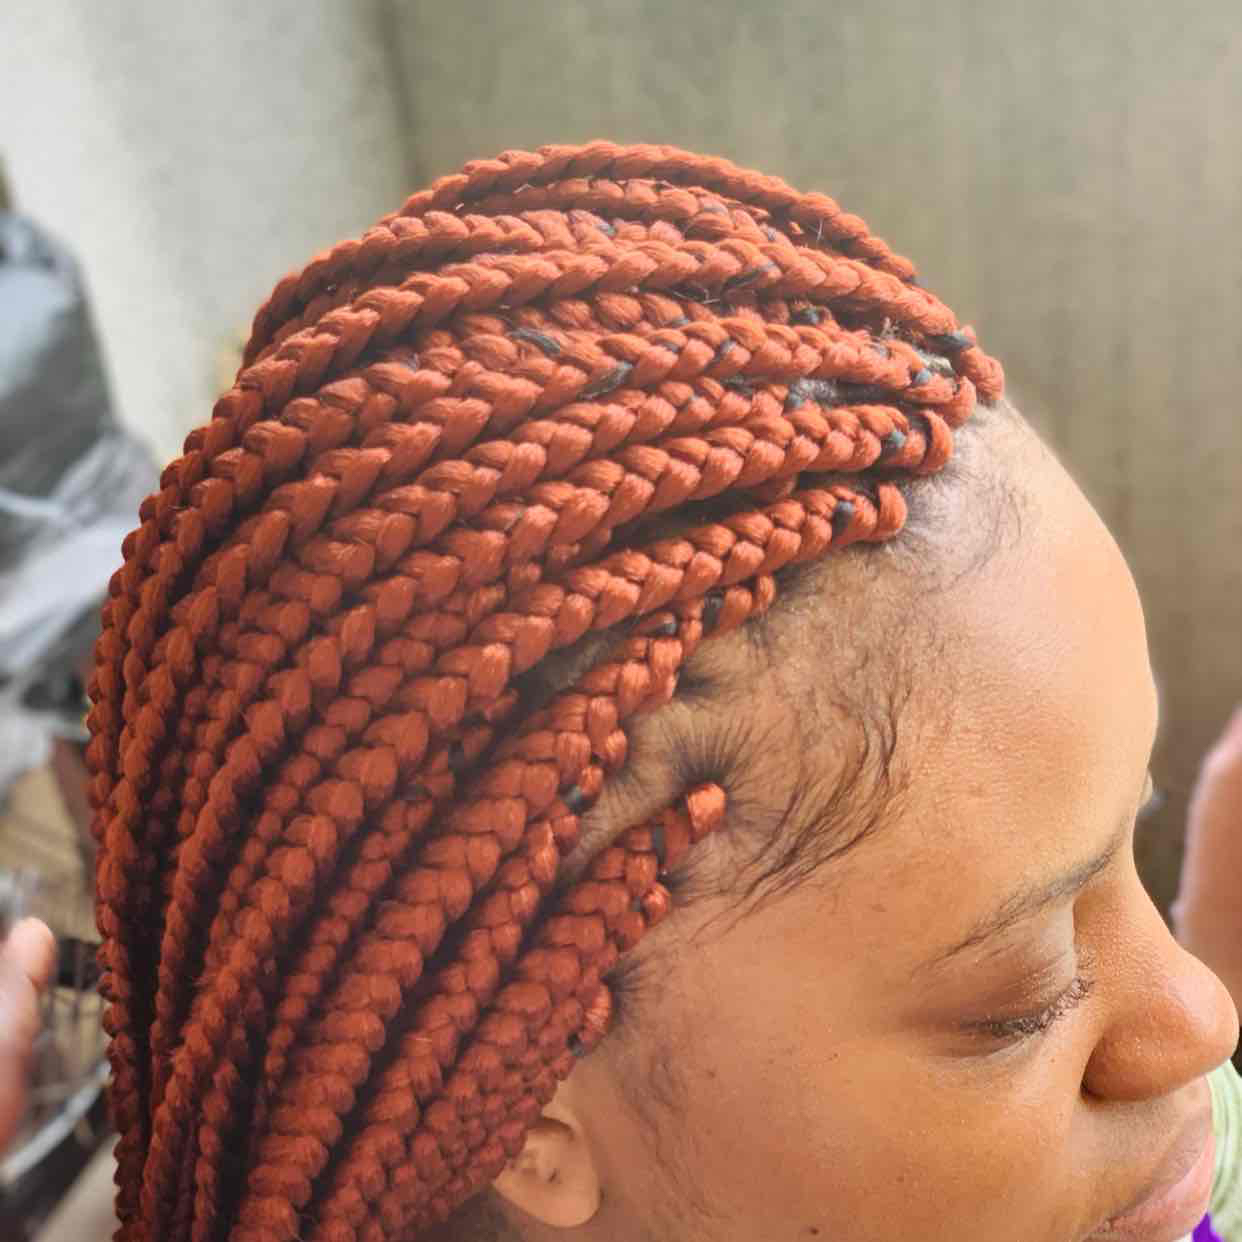 salon de coiffure afro tresse tresses box braids crochet braids vanilles tissages paris 75 77 78 91 92 93 94 95 IBBIKYCM